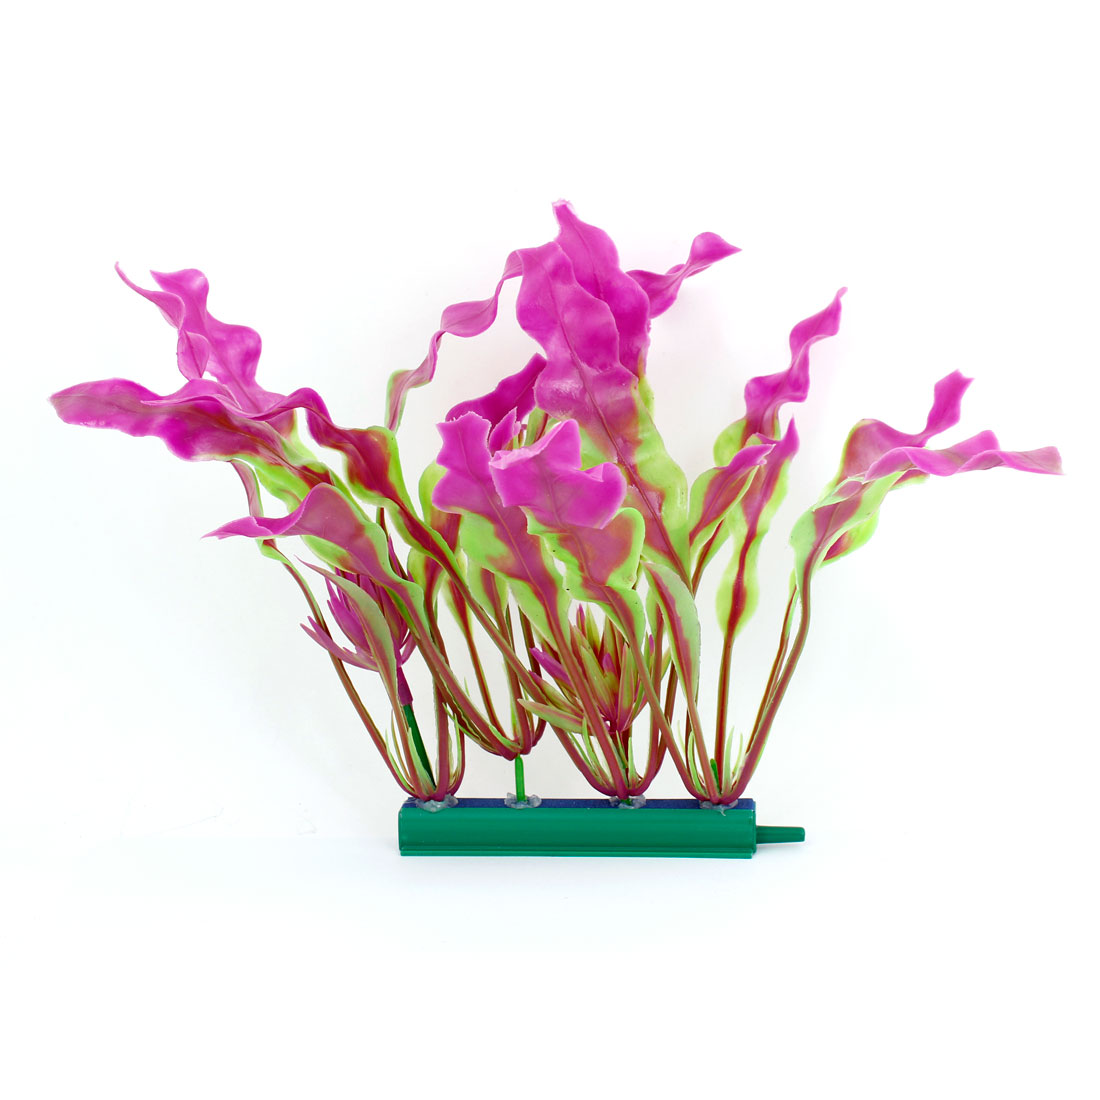 "Aquarium Emulational Decor Green Fuchsia Plastic Underwater Plant 7.7"" Height"